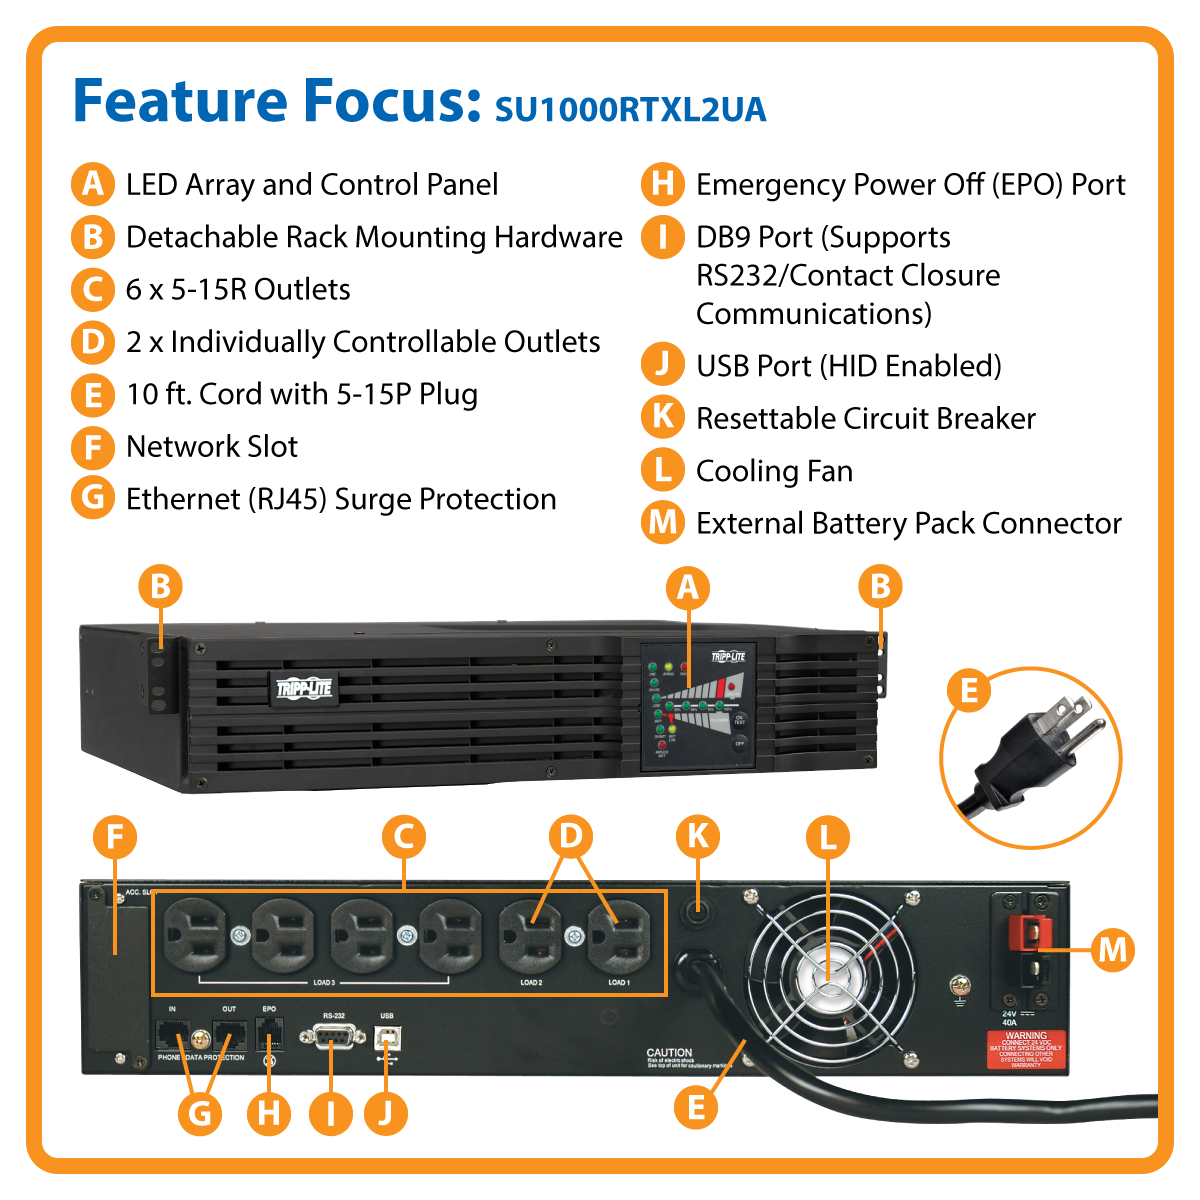 slide 1 of 5,show larger image, su1000rtxl2ua smartonline® double-conversion rack/tower ups sine wave ups with expandable runtime and network slot